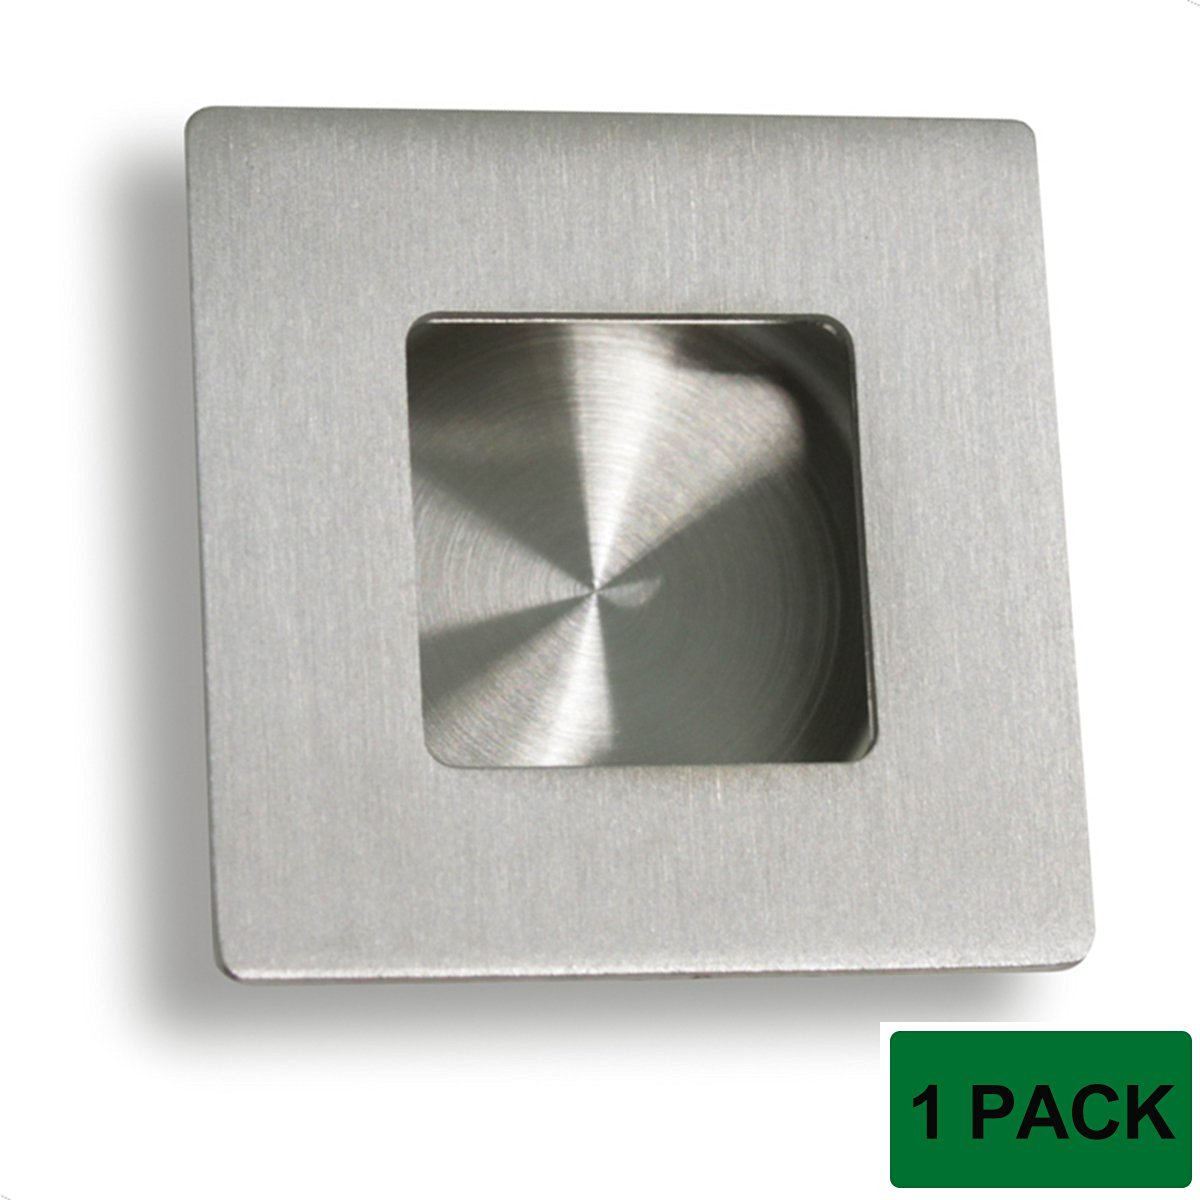 Probrico MH009SS50 Flush Pull Furniture Door Handles Drawer Knobs Square Stainless Steel 50mm 1 Pack